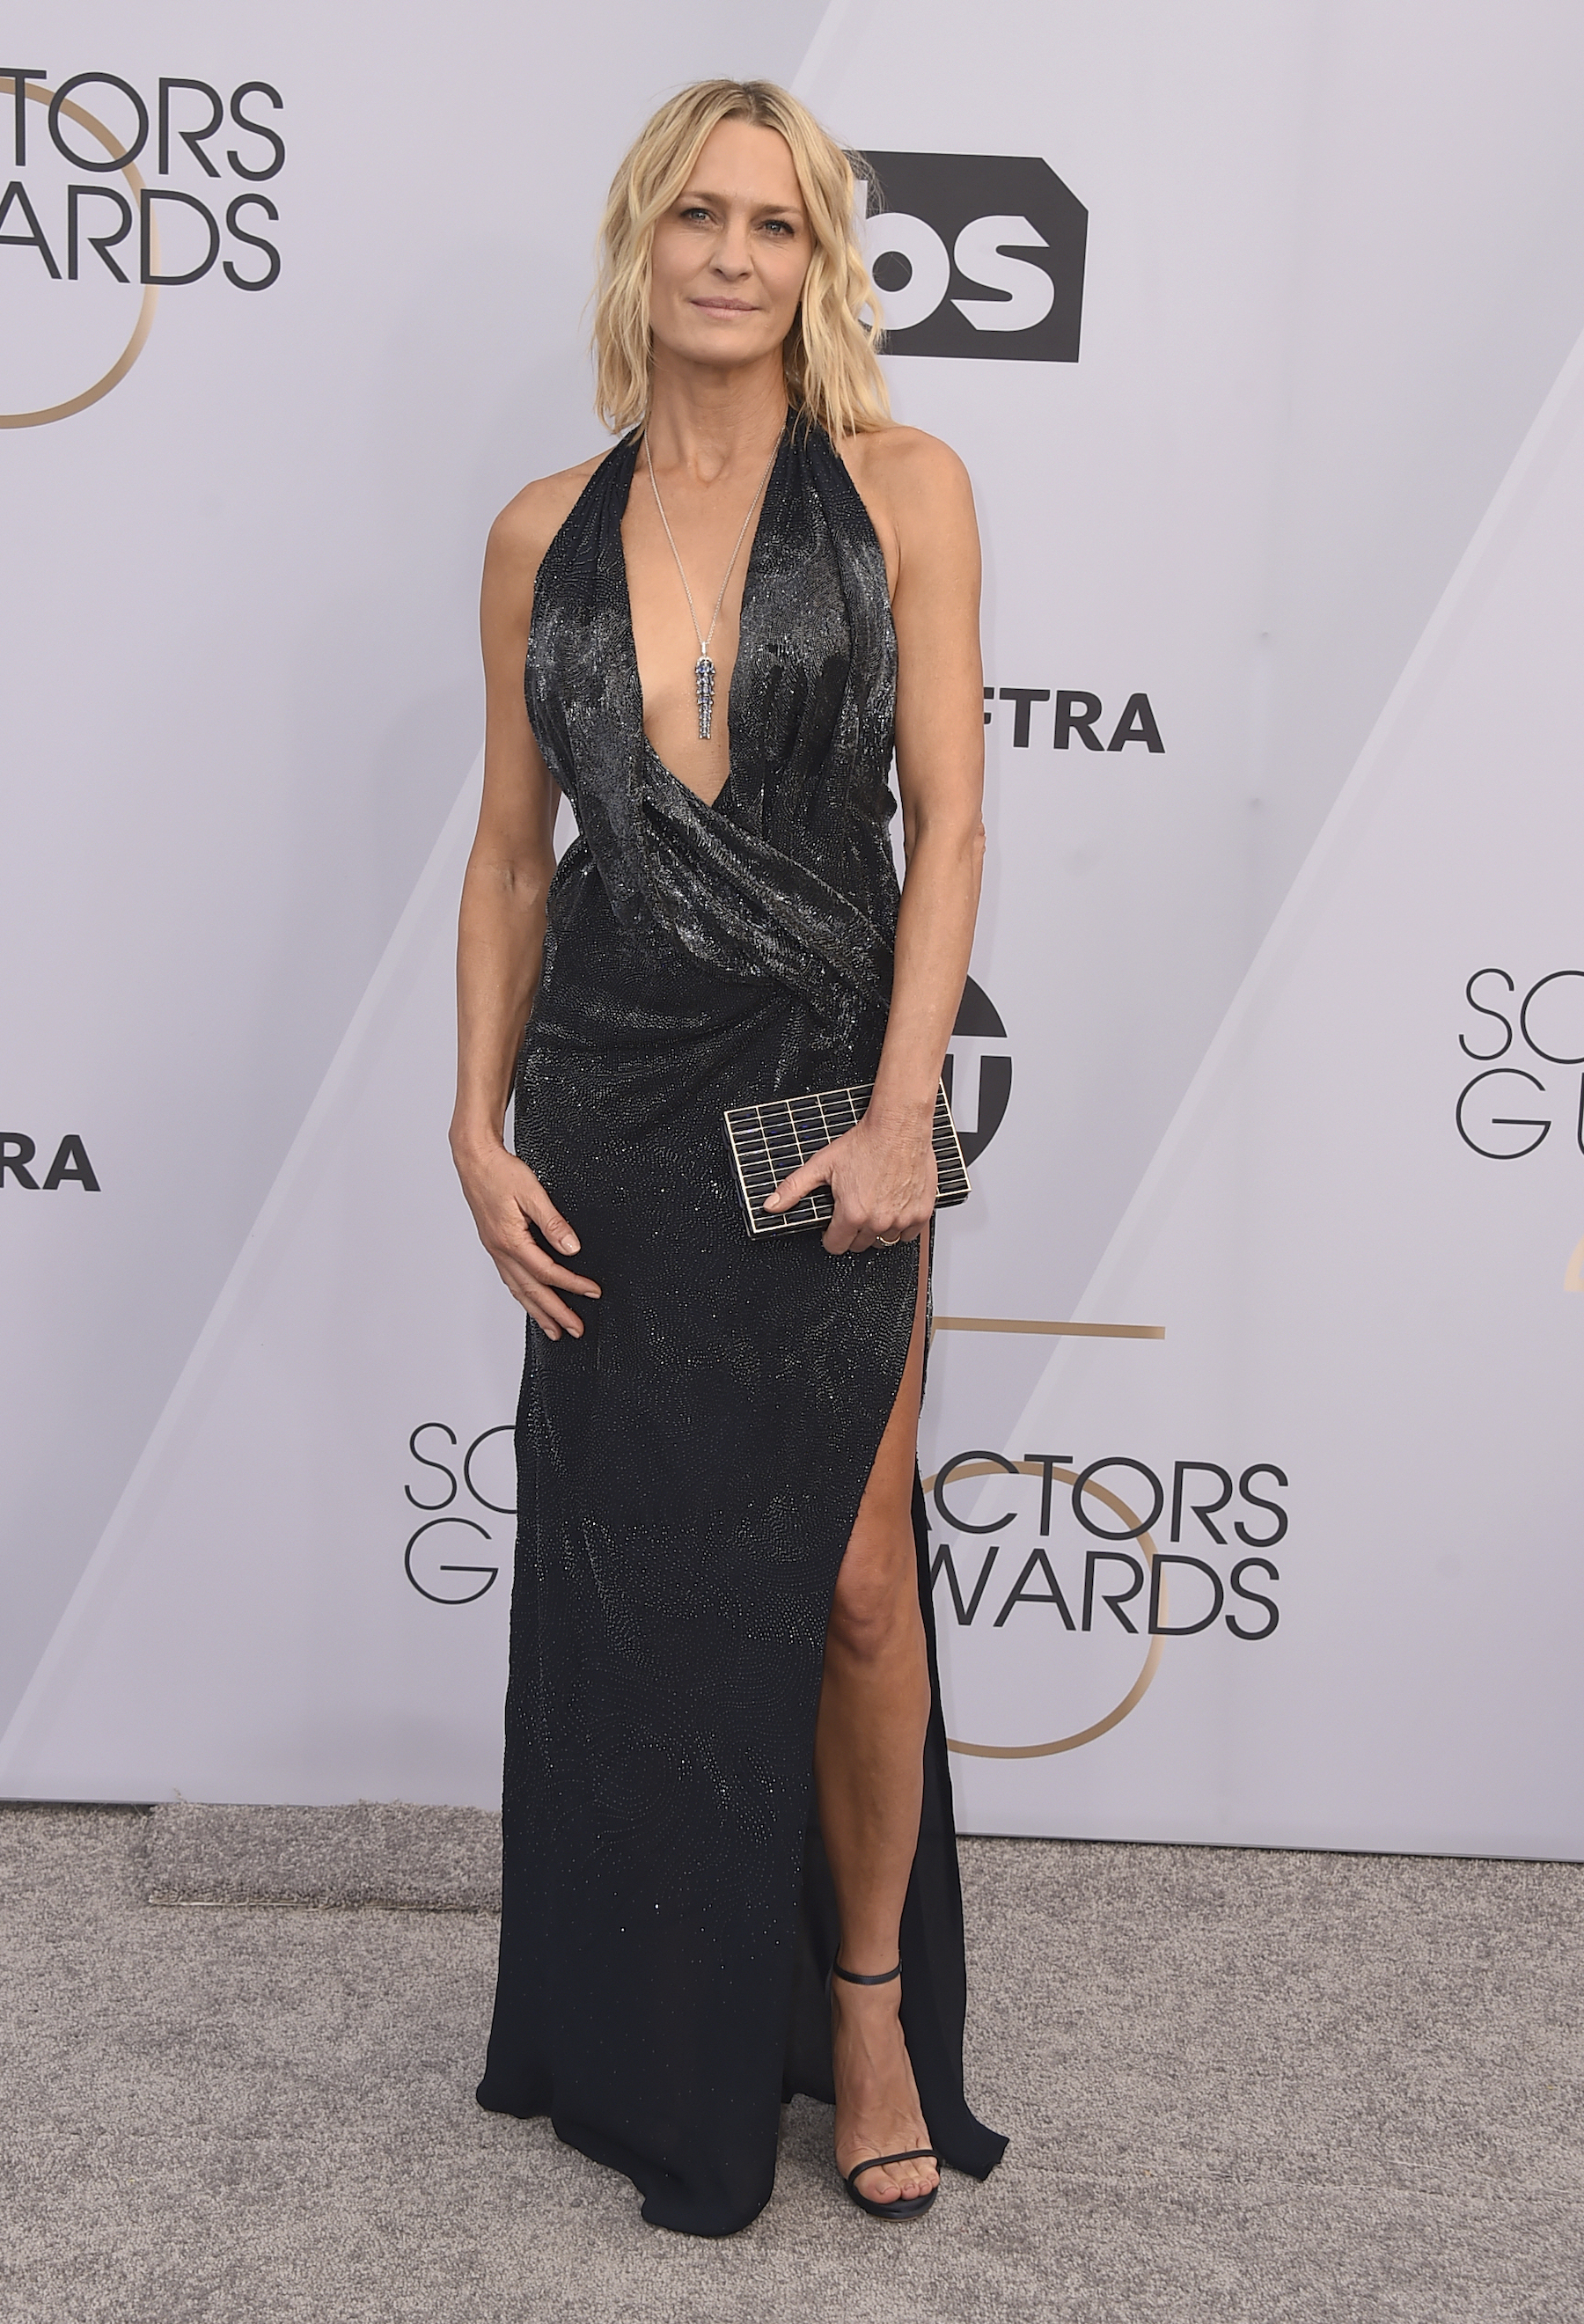 "<div class=""meta image-caption""><div class=""origin-logo origin-image ap""><span>AP</span></div><span class=""caption-text"">Robin Wright arrives at the 25th annual Screen Actors Guild Awards at the Shrine Auditorium & Expo Hall on Sunday, Jan. 27, 2019, in Los Angeles. (Jordan Strauss/Invision/AP)</span></div>"